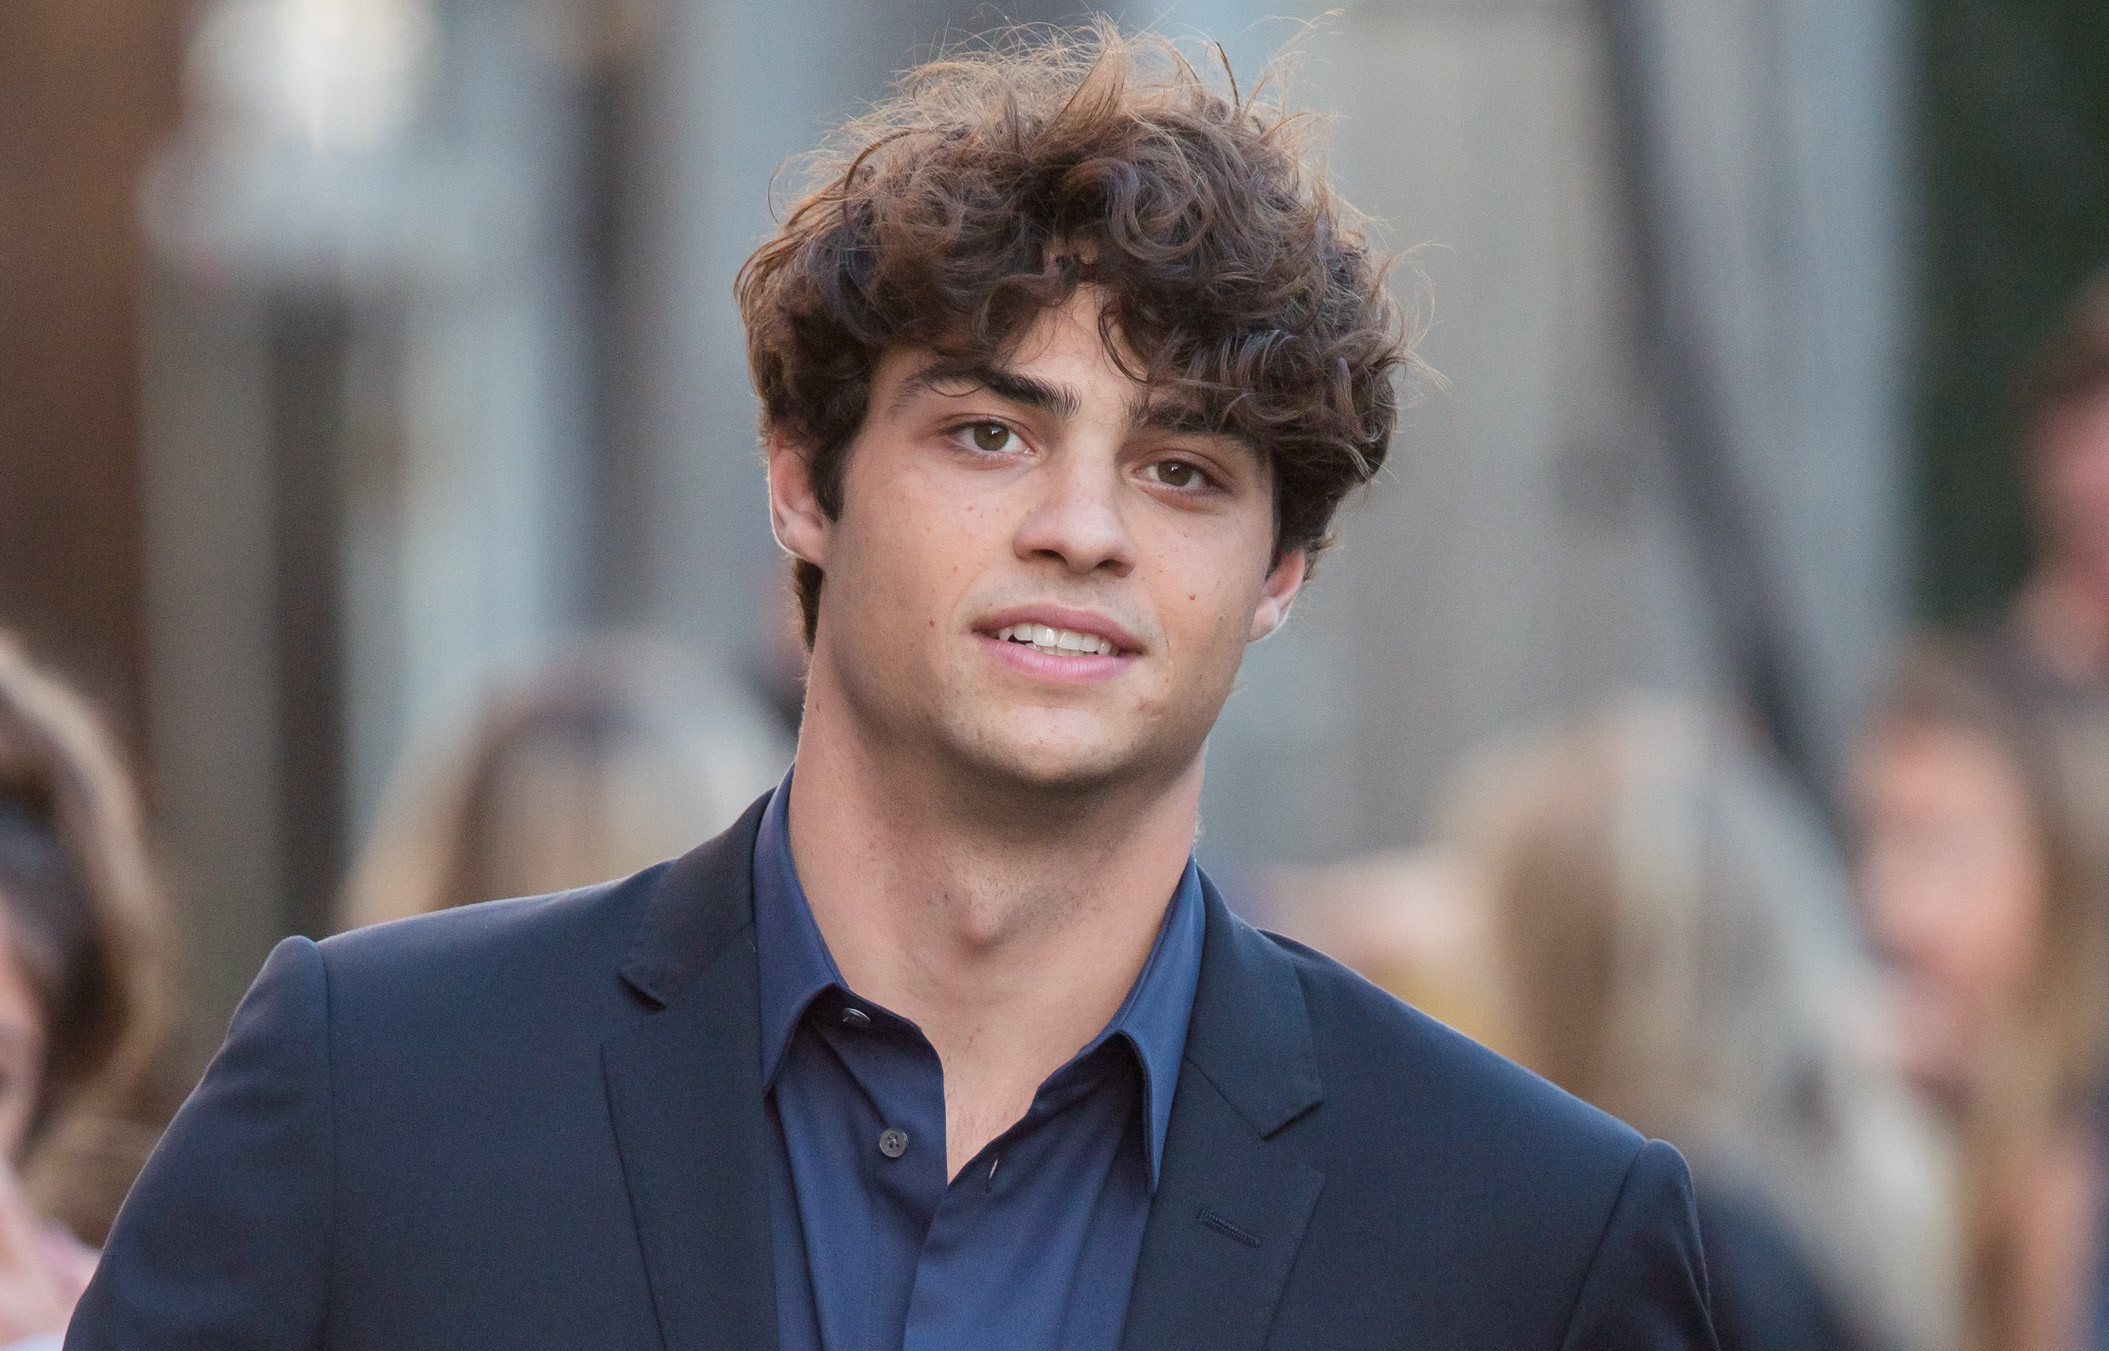 Noah Centineo Ethnicity, Race, and Nationality